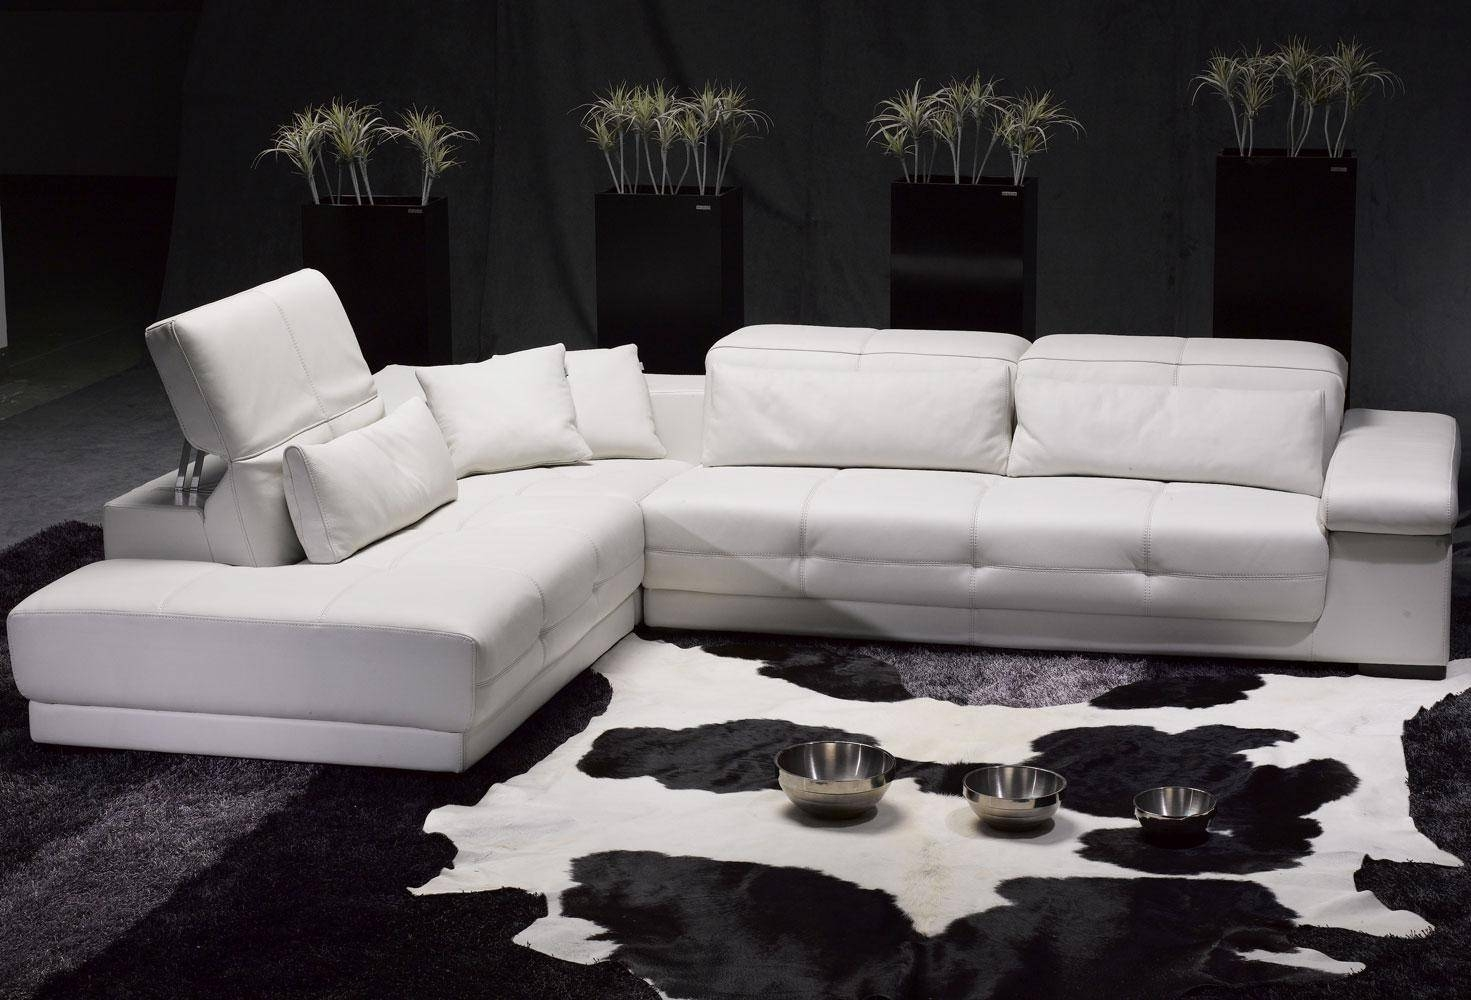 White Sectional Sofa | Home Designjohn Throughout Black And White Sectional Sofa (View 15 of 30)